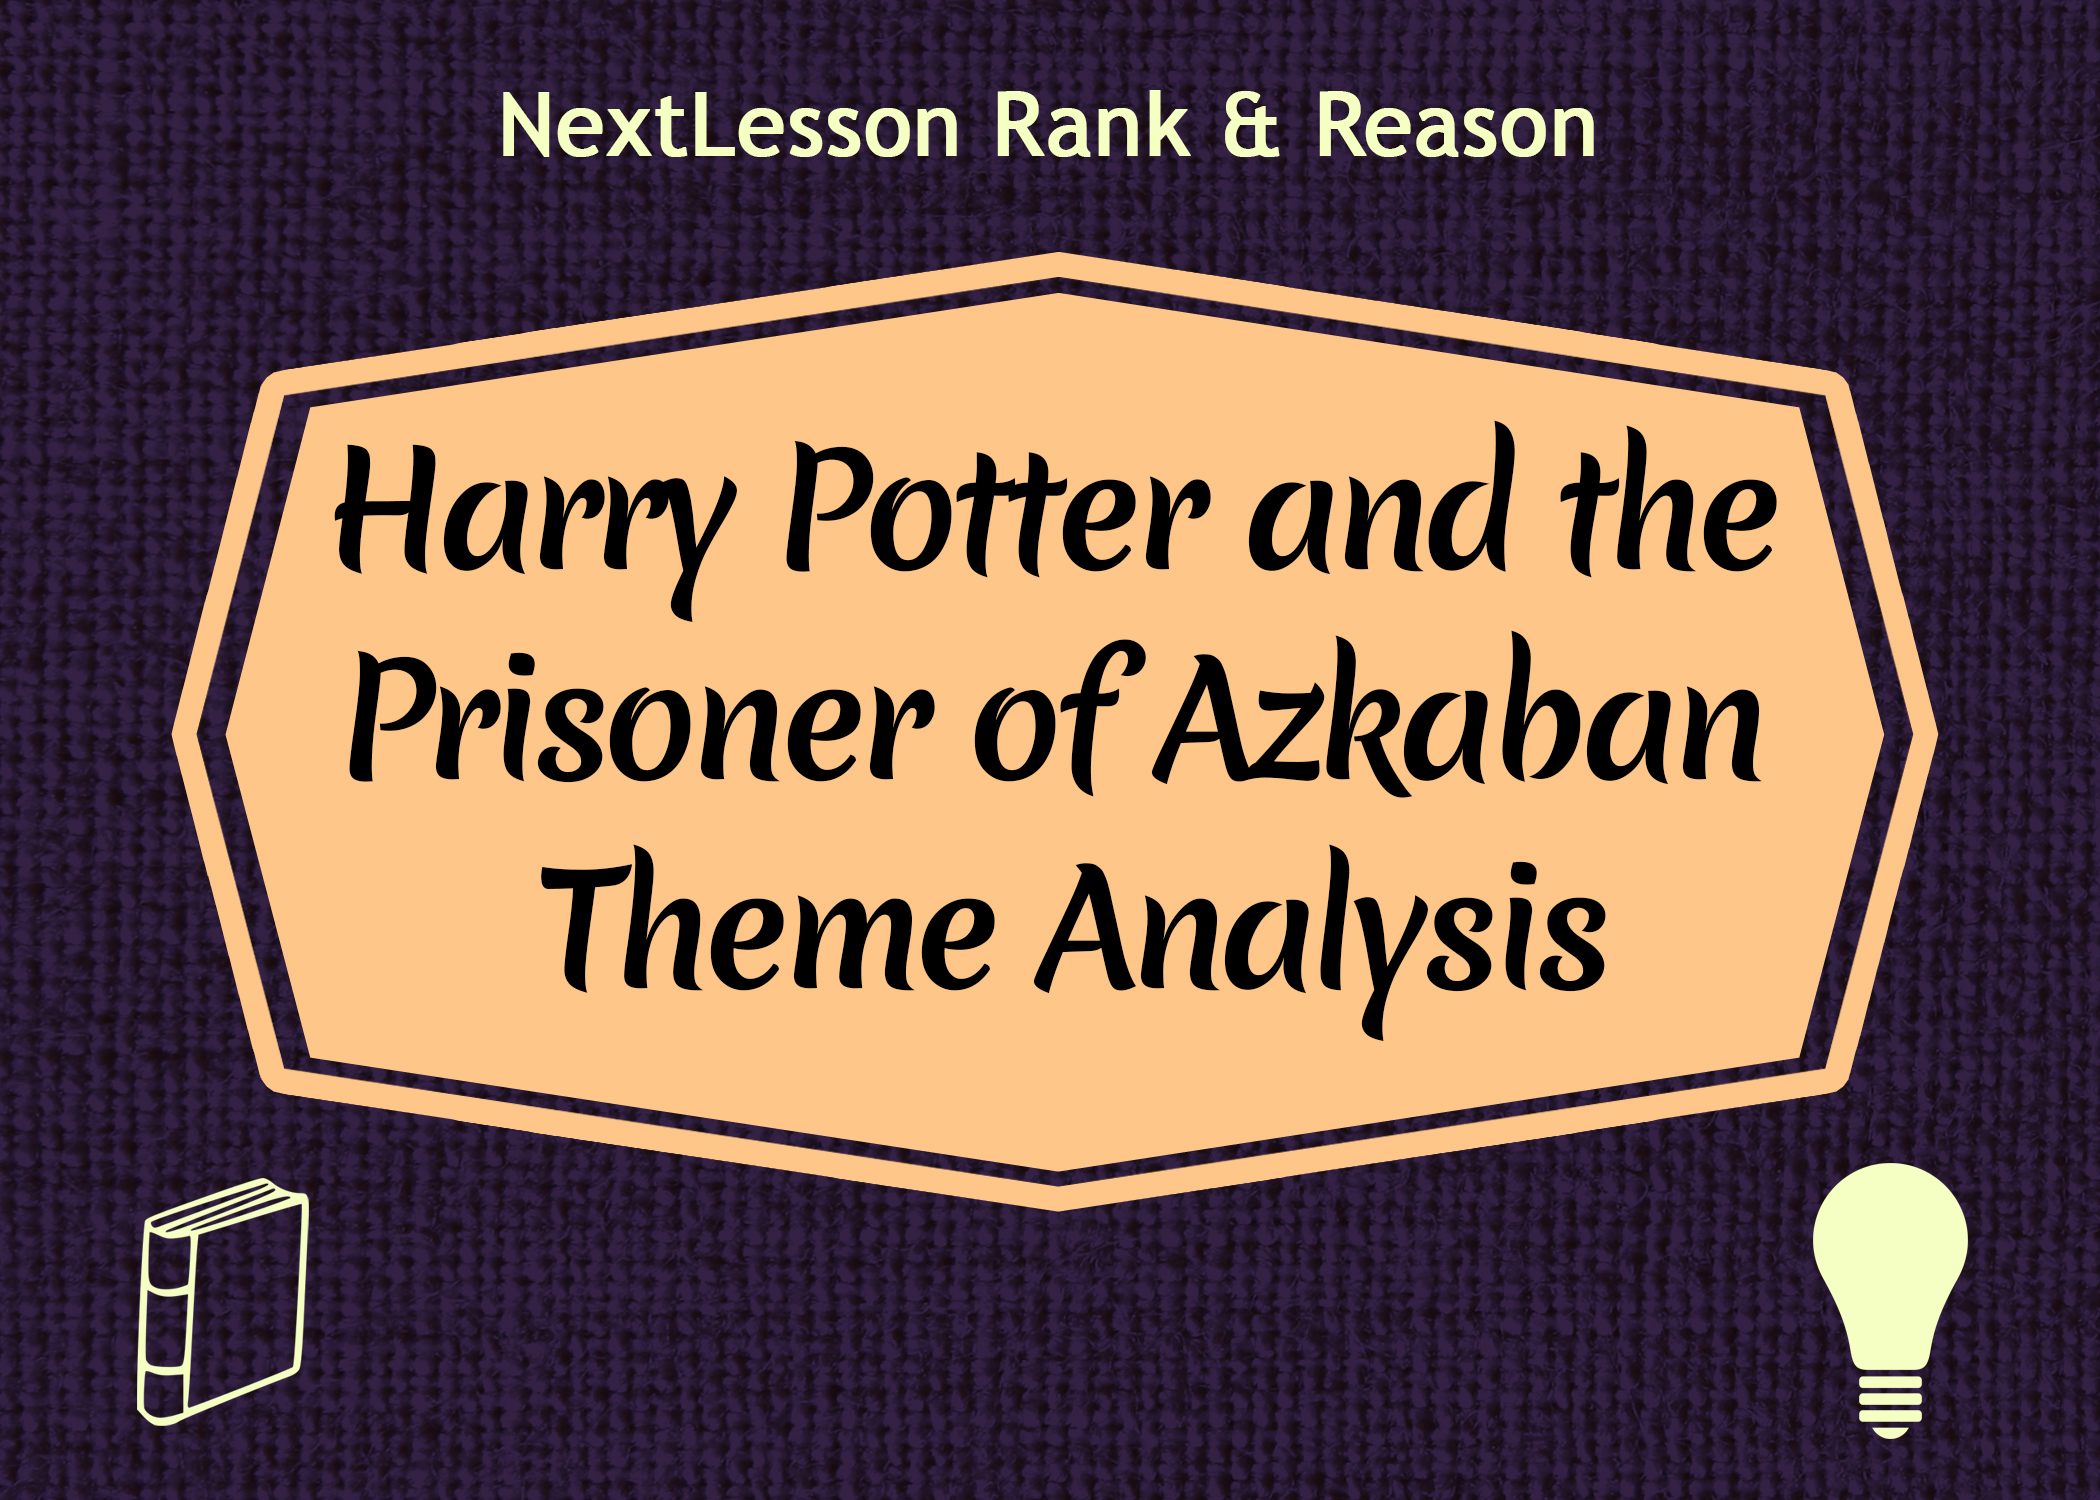 an analysis of theme of the prisoner of chillon The best christmas ever by james patrick kelly at the wayback machine (archived april 29, 2007): it was nominated for the 2005 hugo award for best short story plot summary: the story follows albert hopkins, the last real man on earth, and the biops that care for him.